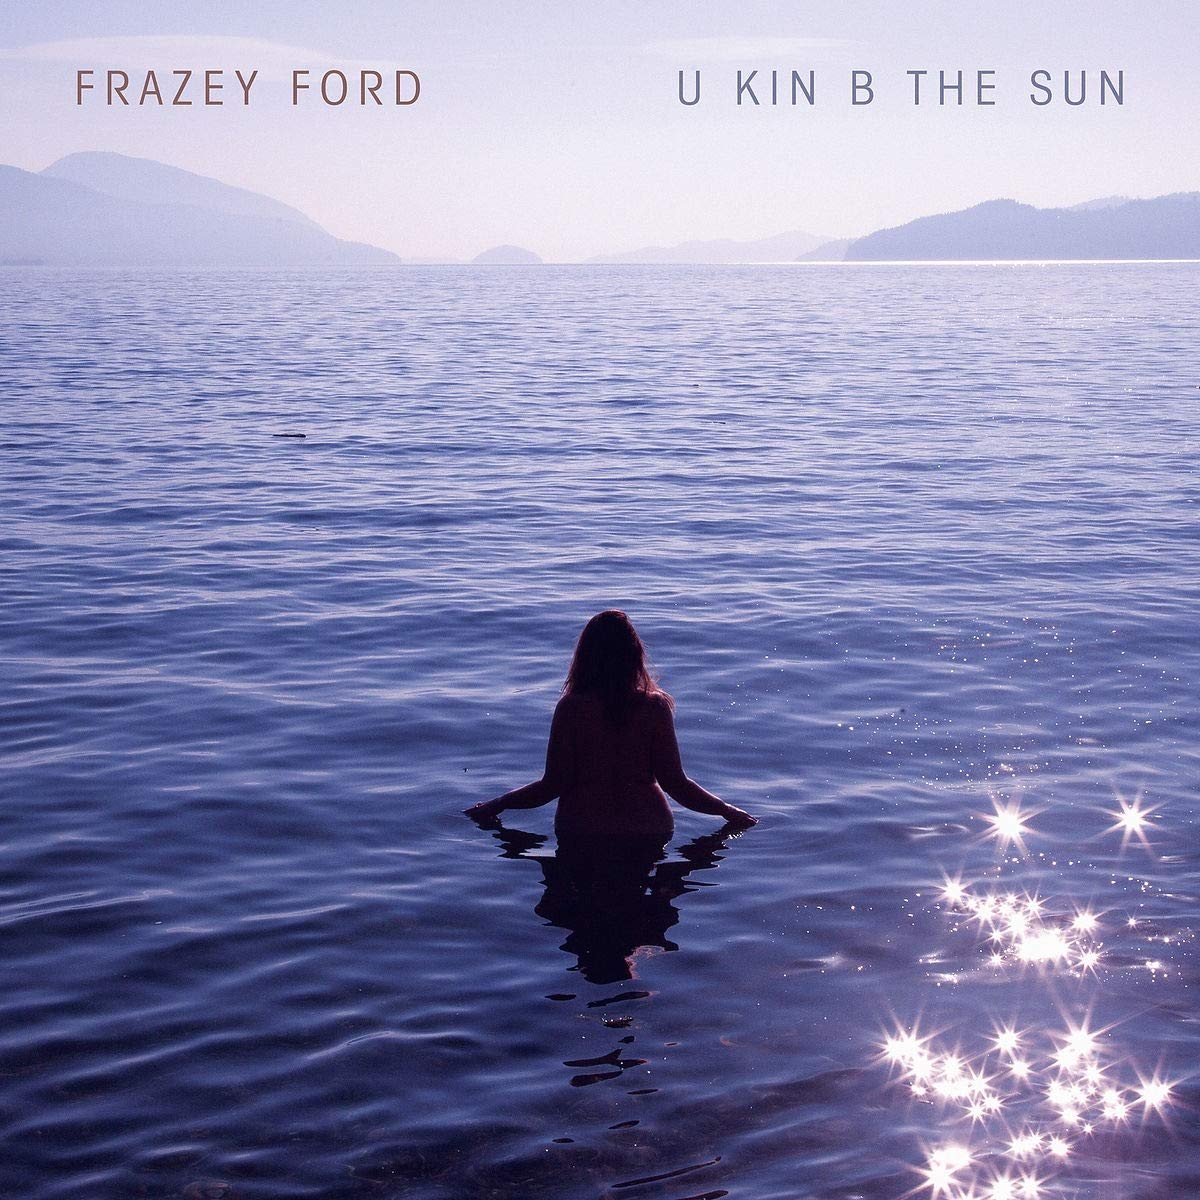 Frazey Ford - U kin B the Sun [LP]